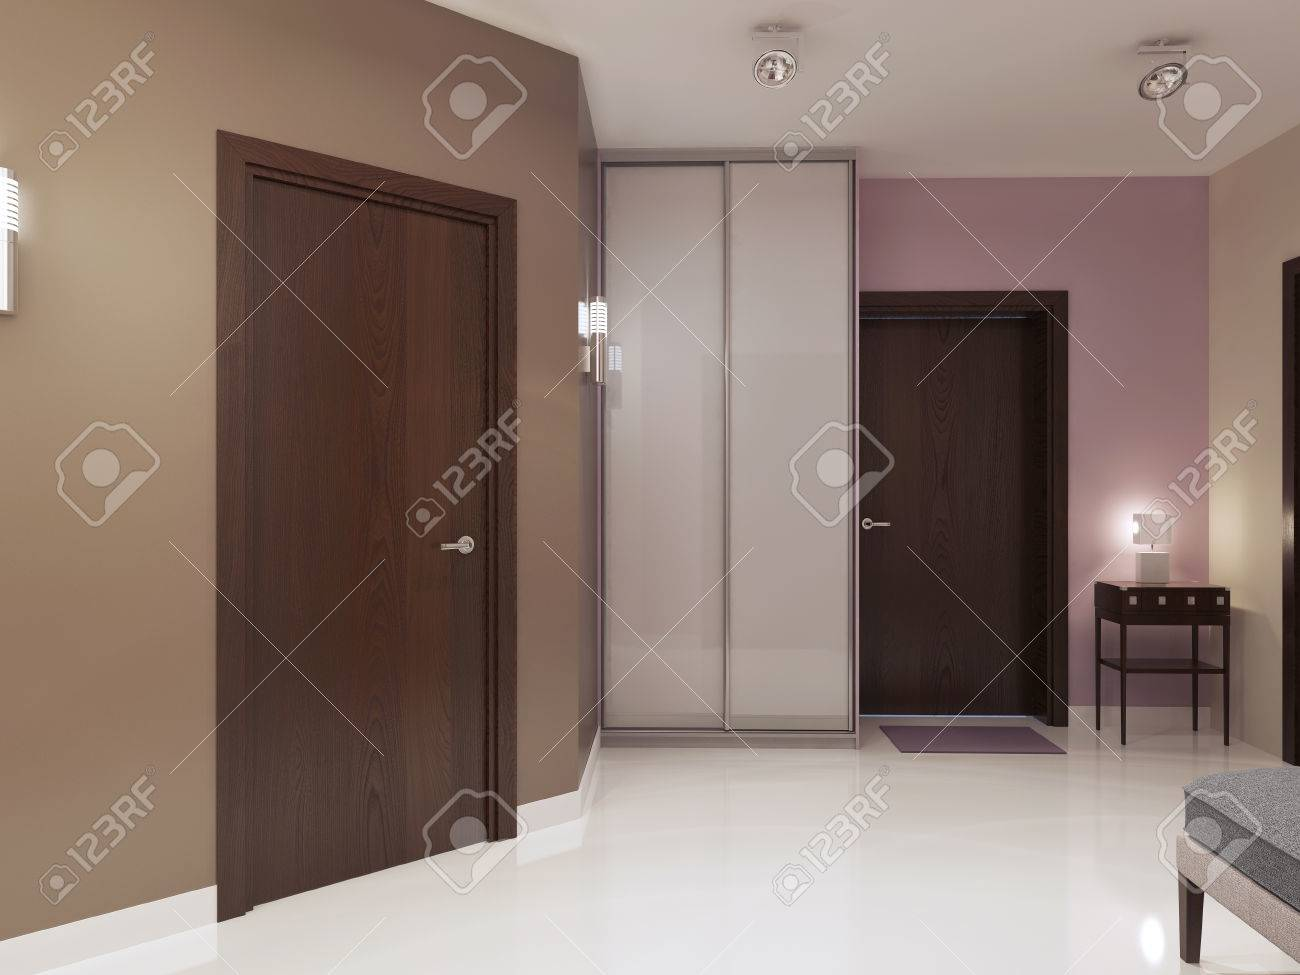 Idea of minimalist entrance hall. Single main door wardrobe with white matt doors. & Idea Of Minimalist Entrance Hall. Single Main Door Wardrobe ...